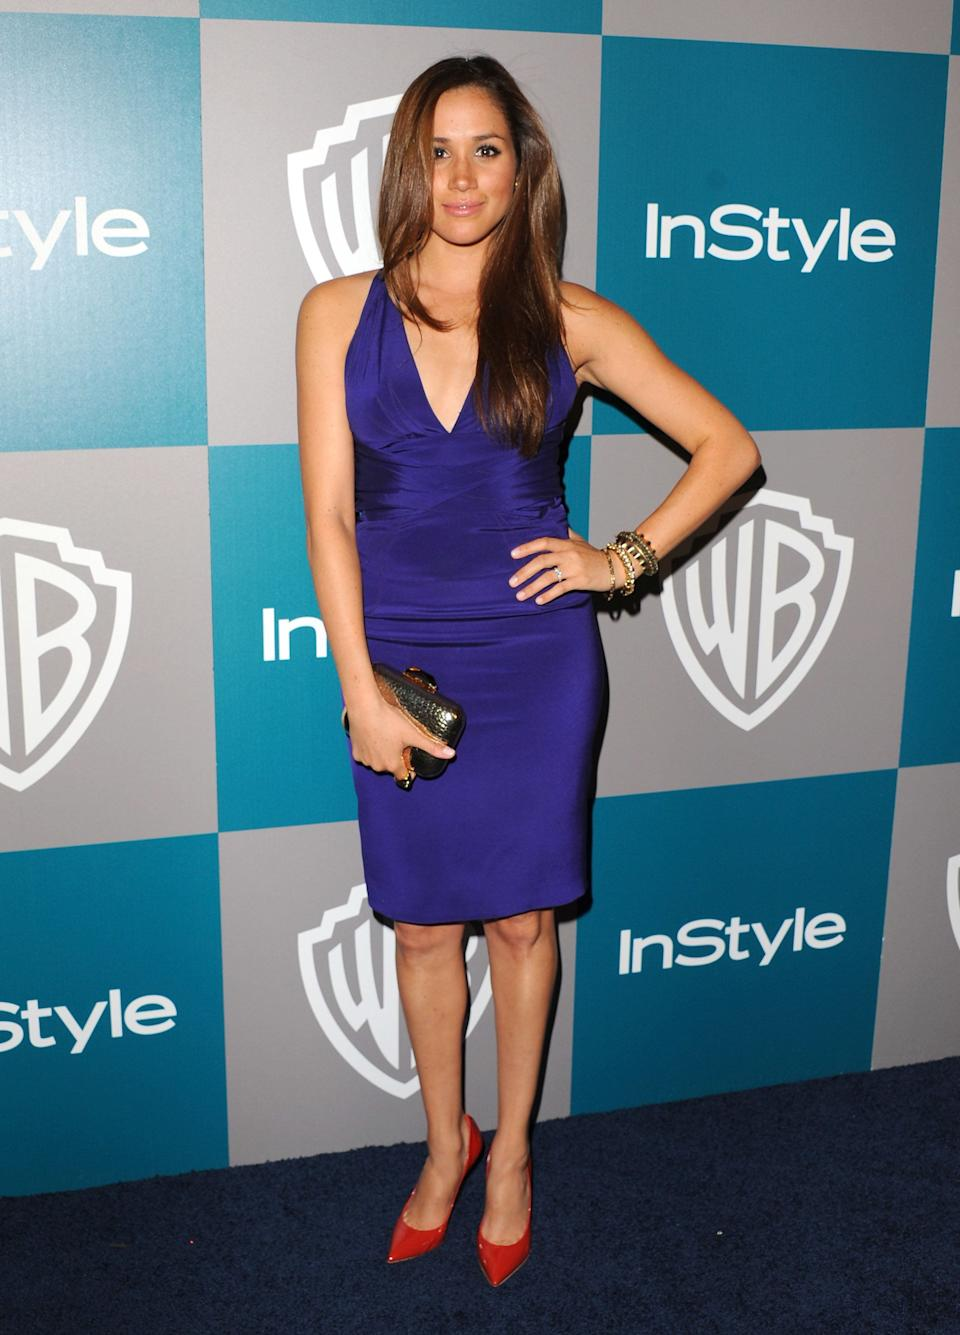 At the 13th Annual Warner Bros. and InStyle Golden Globe After Party held at The Beverly Hilton hotel in Beverly Hills, California.